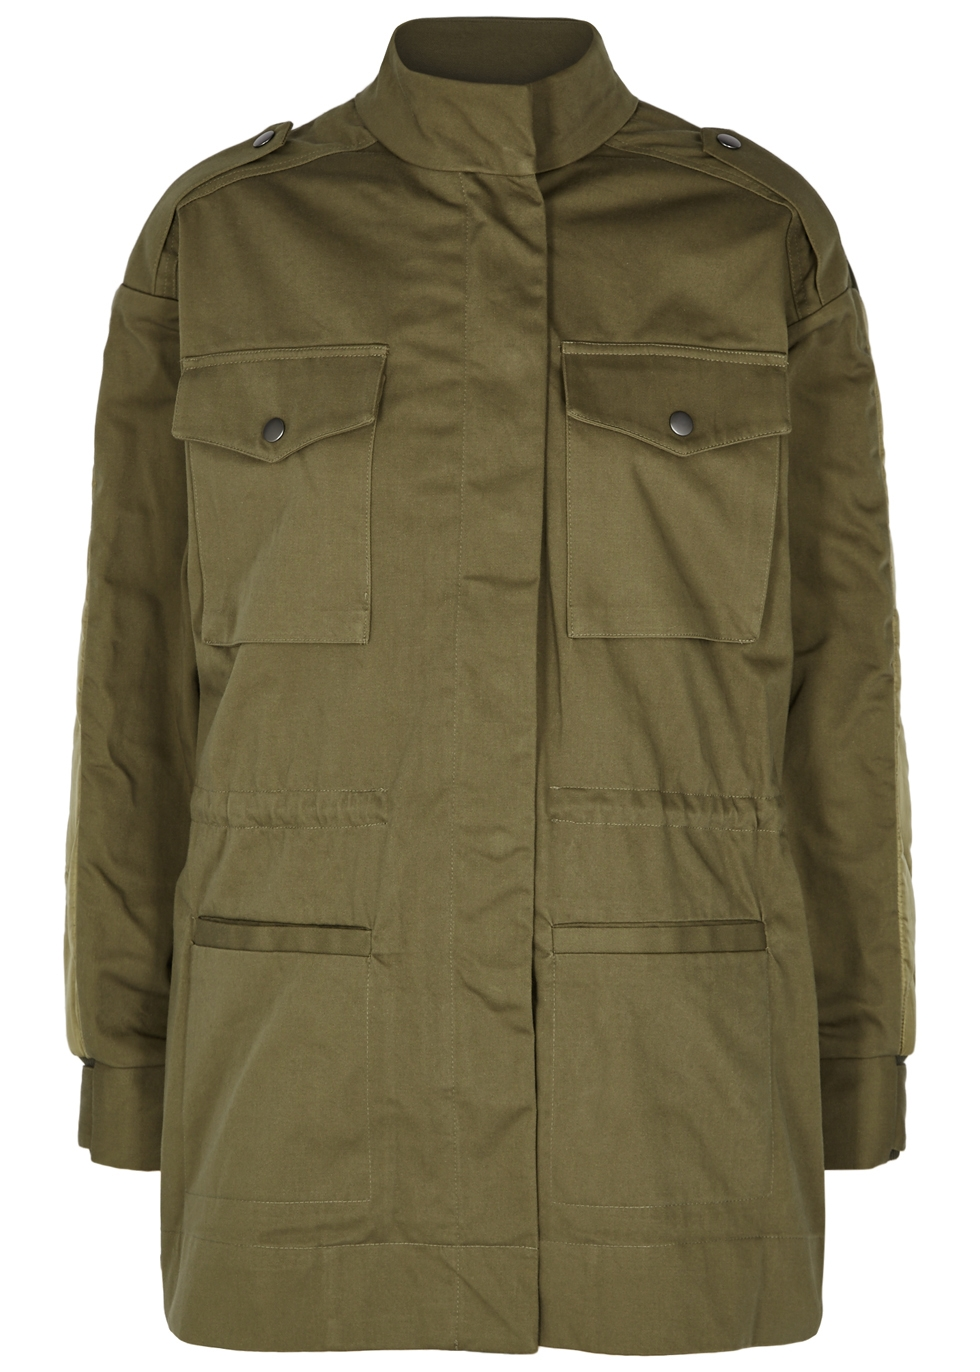 SEA NY Zamara Quilted Cotton Jacket in Green